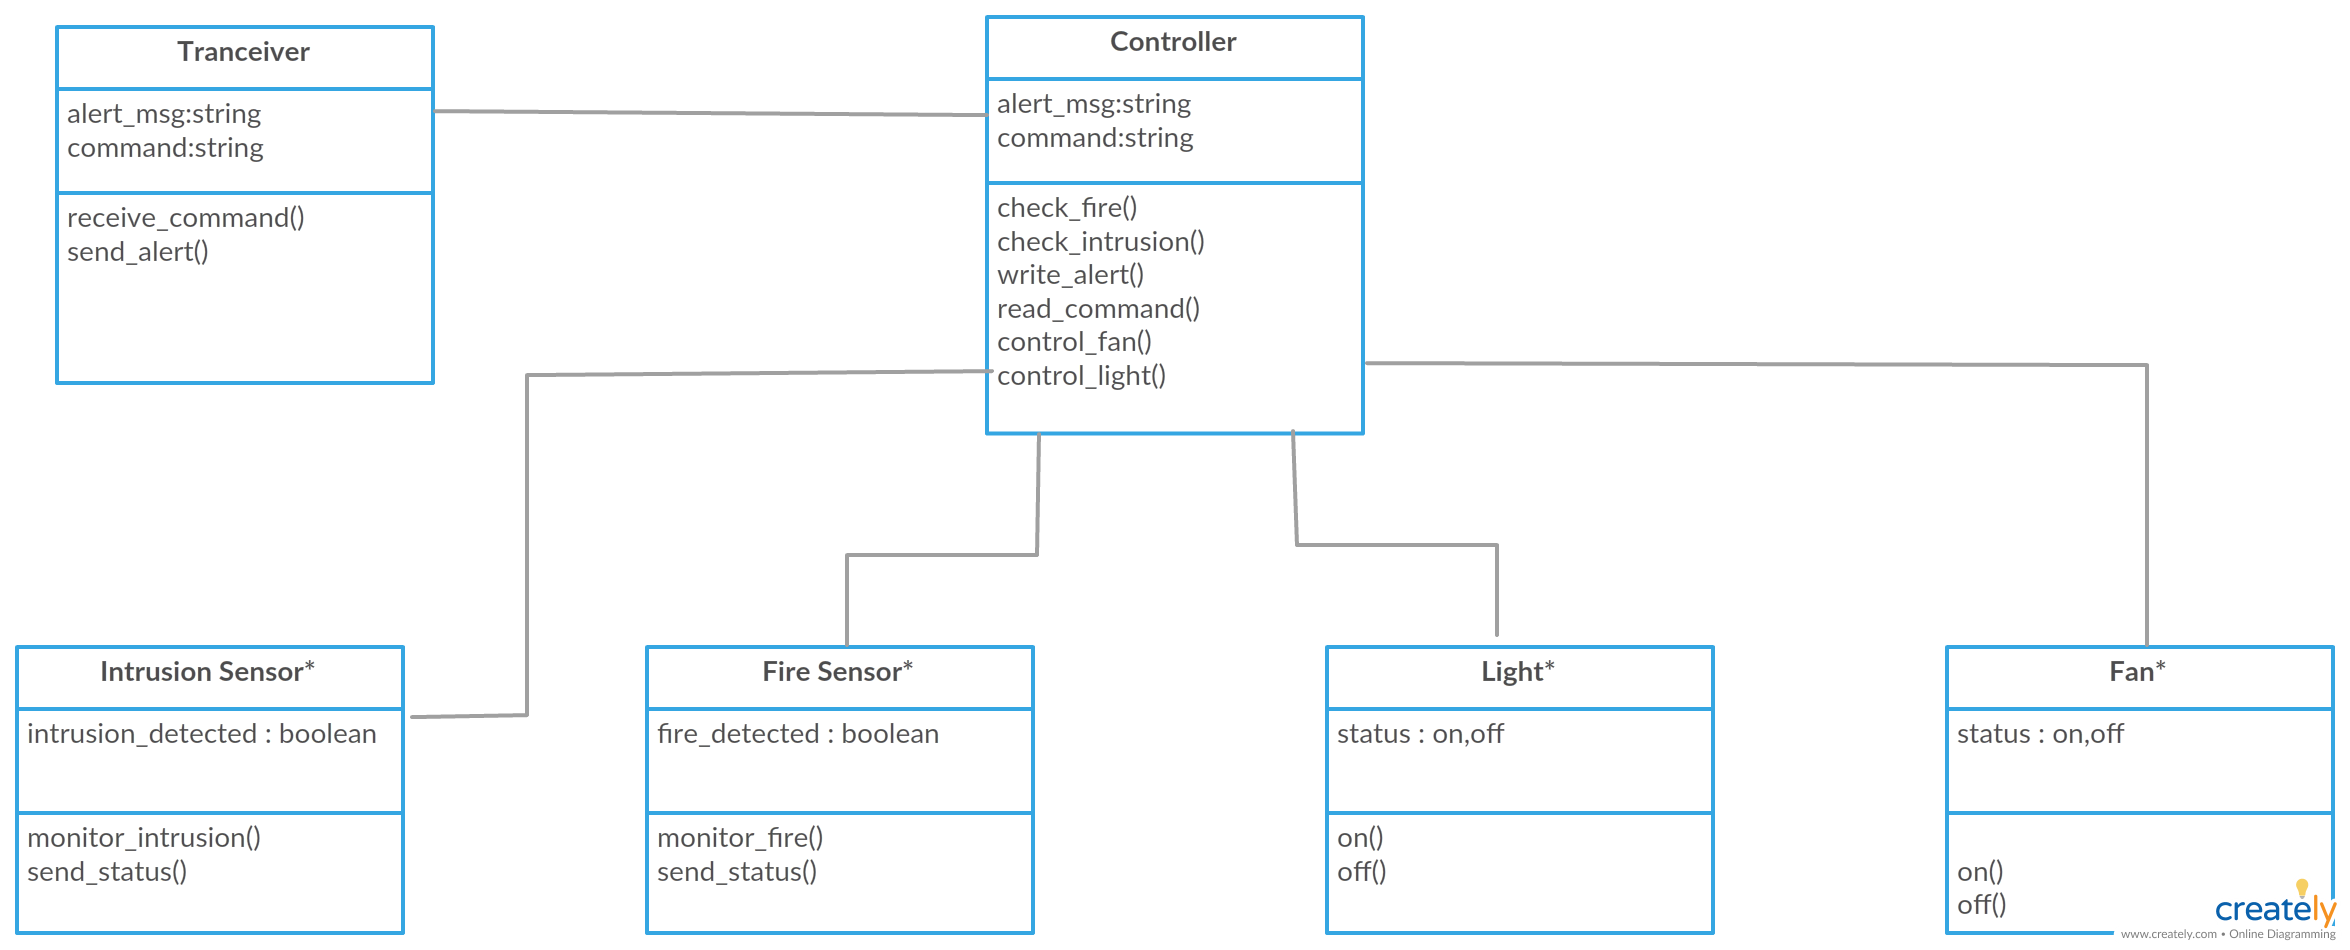 uml class diagrams for home automation system you can edit this template and create your own [ 2350 x 950 Pixel ]